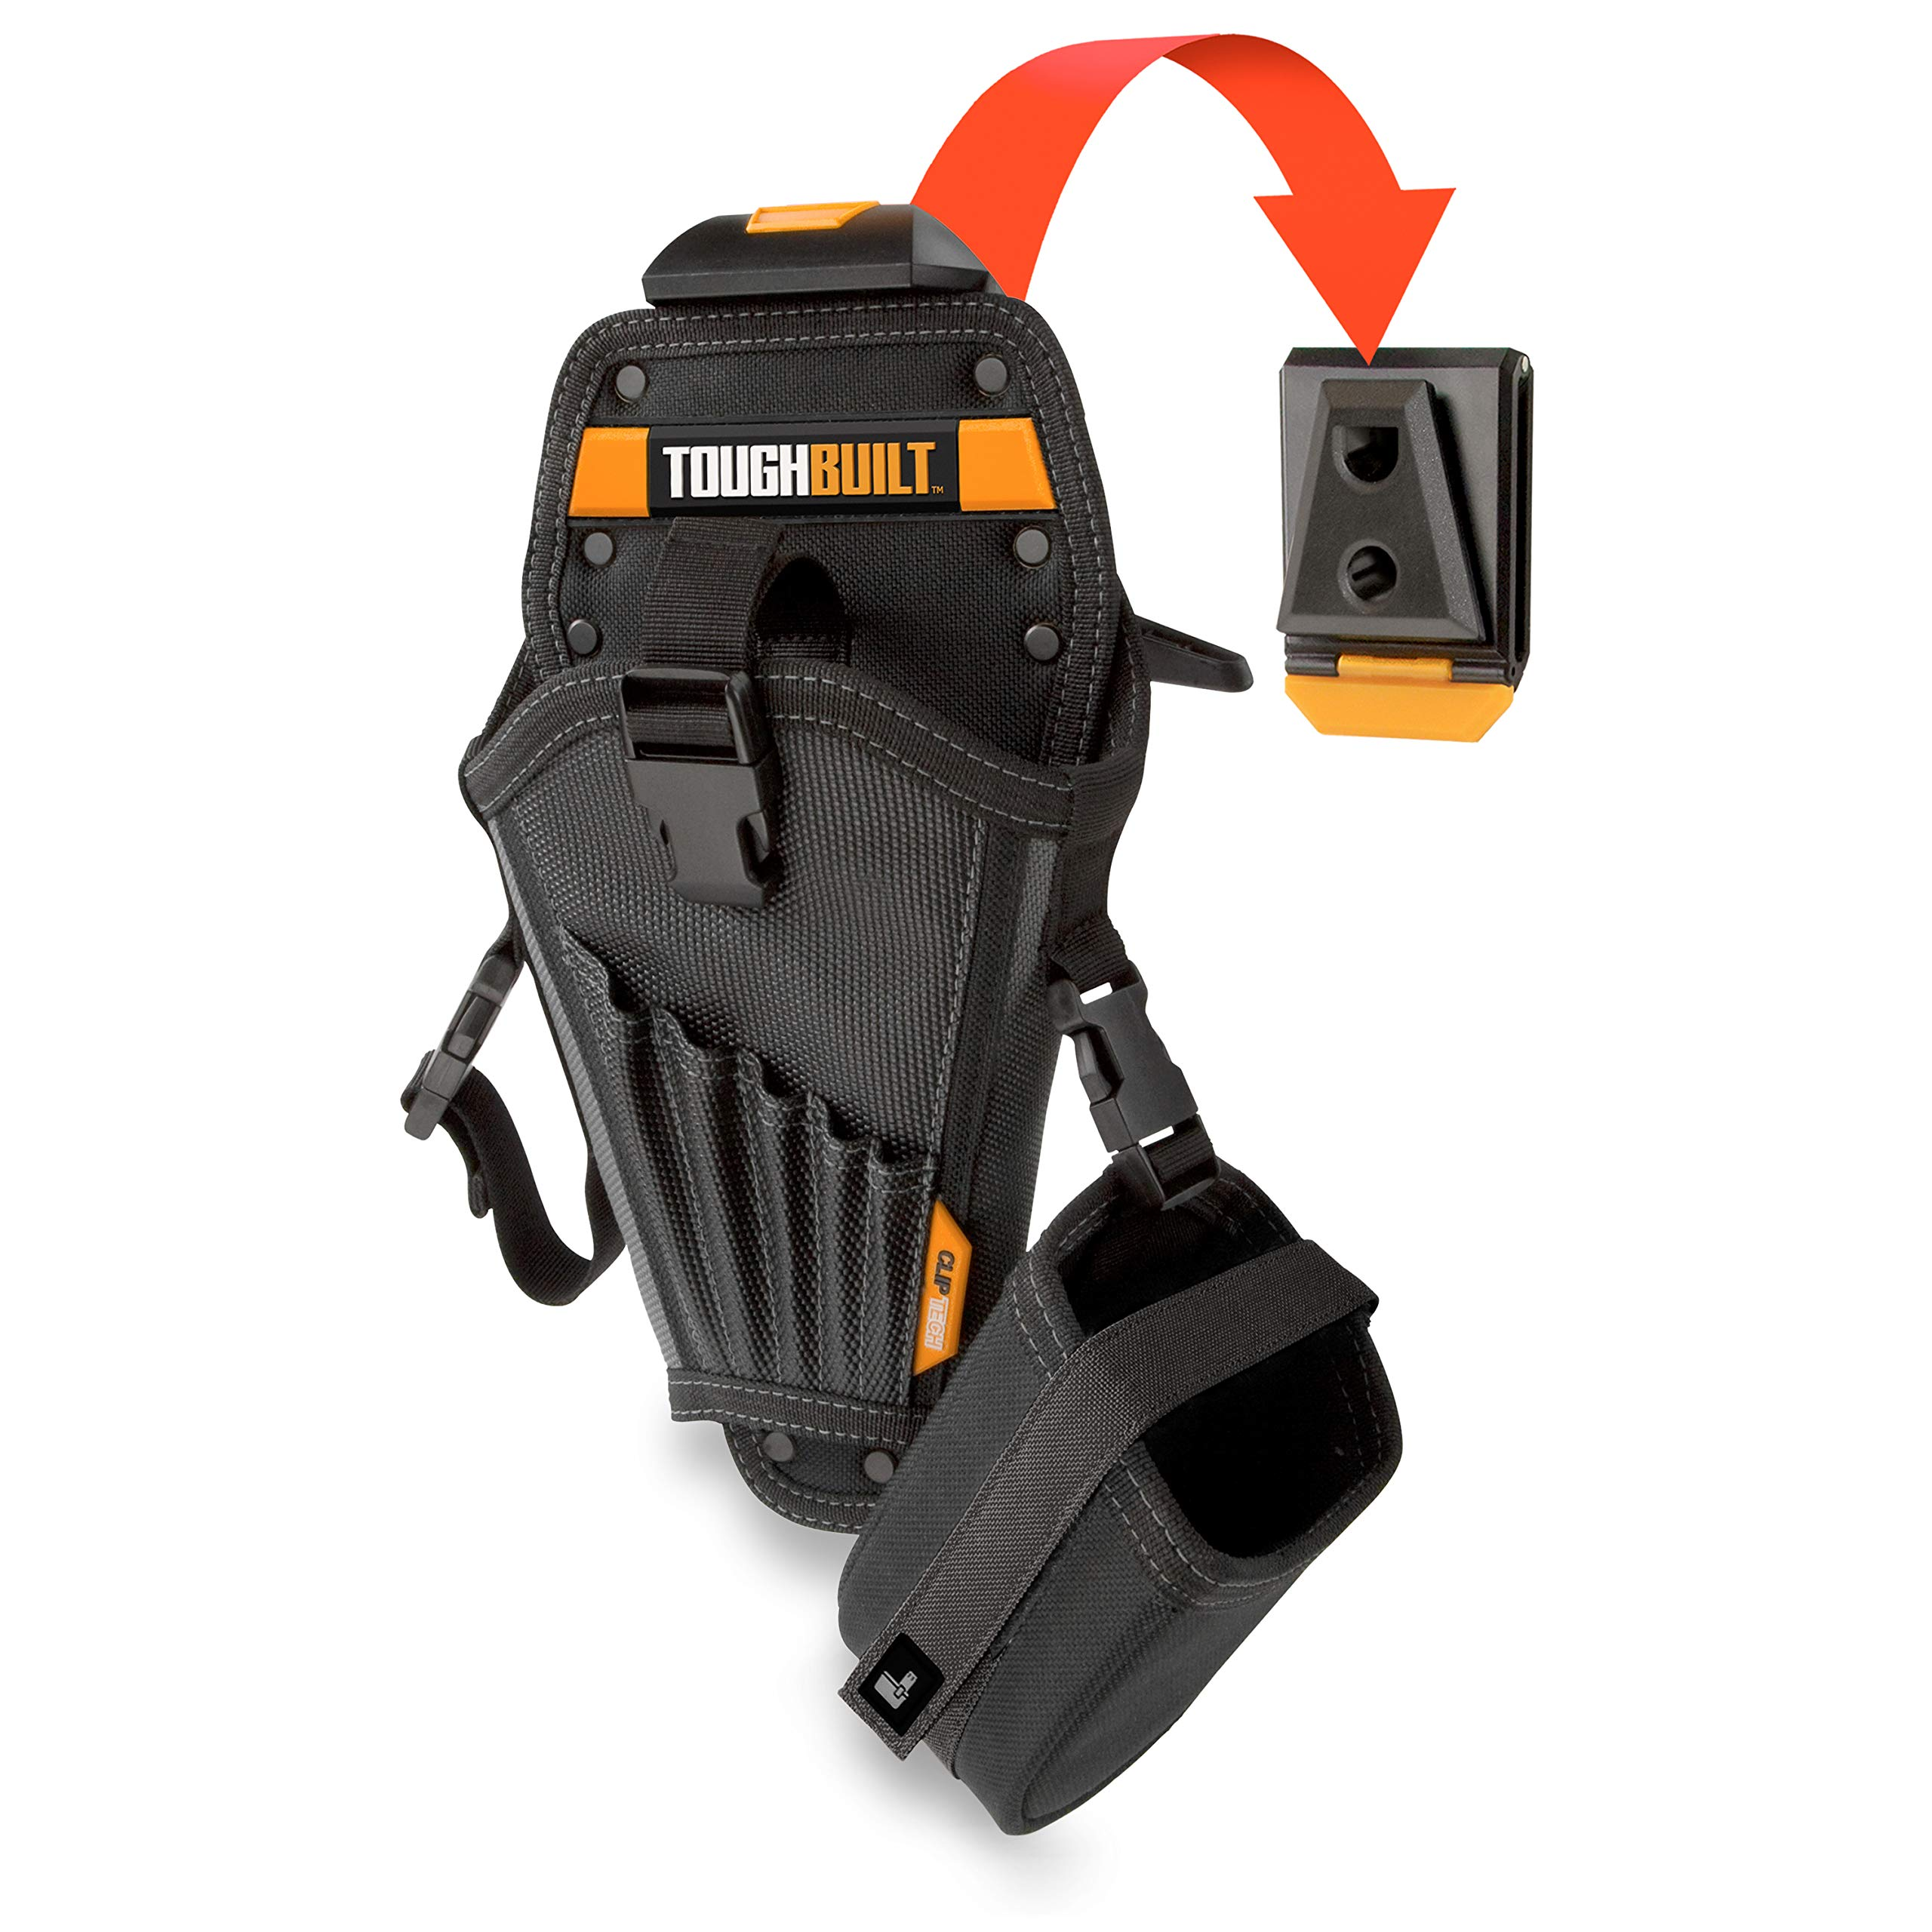 ToughBuilt - Drill Holster with 8 pockers, TB-CT-20 by ToughBuilt